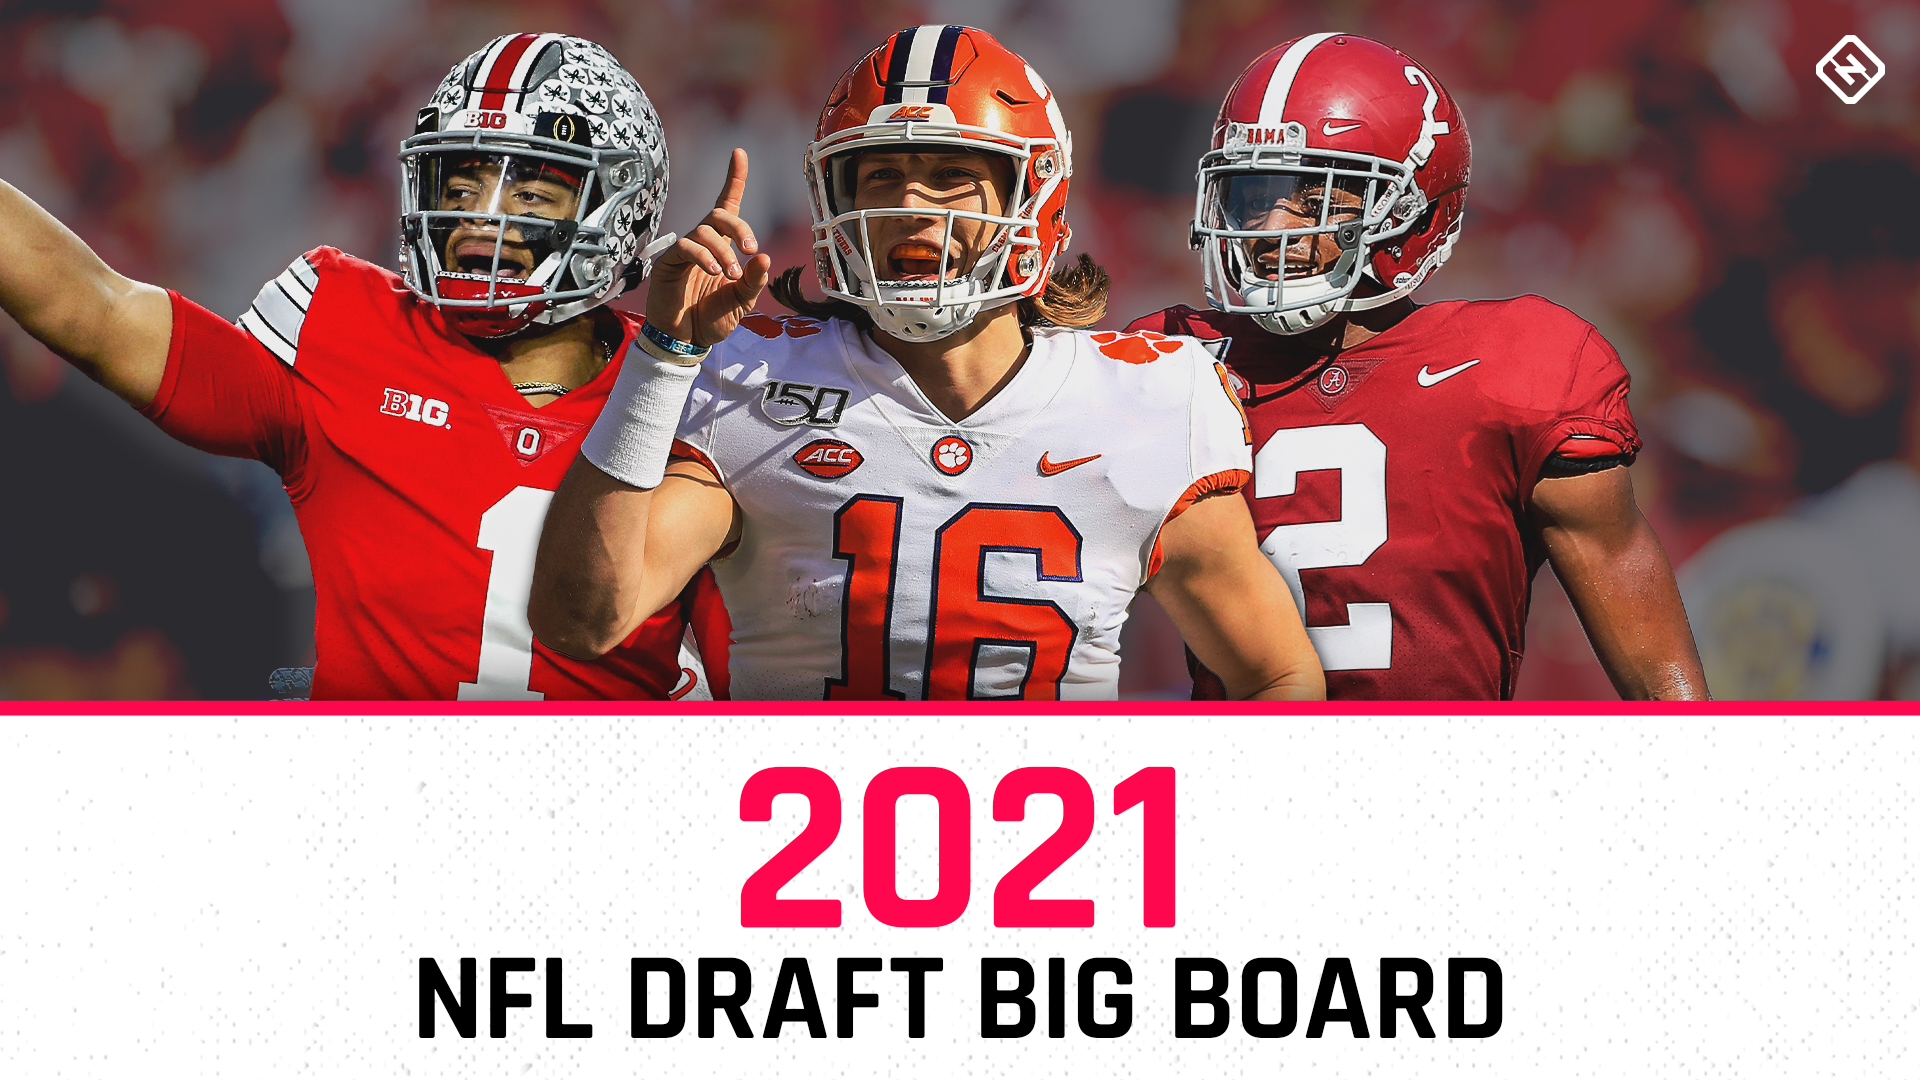 Best Rookie Wr 2021 NFL Draft prospects 2021: Big board of top 50 players overall